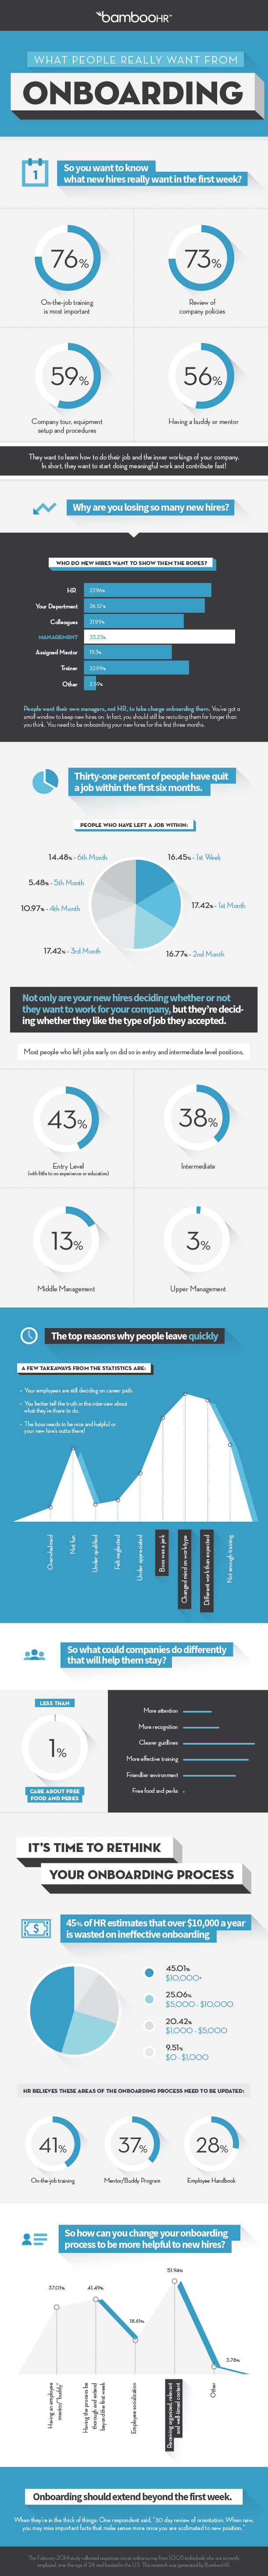 What Do New Hires Want From Onboarding #Infographic #HR #Jobs